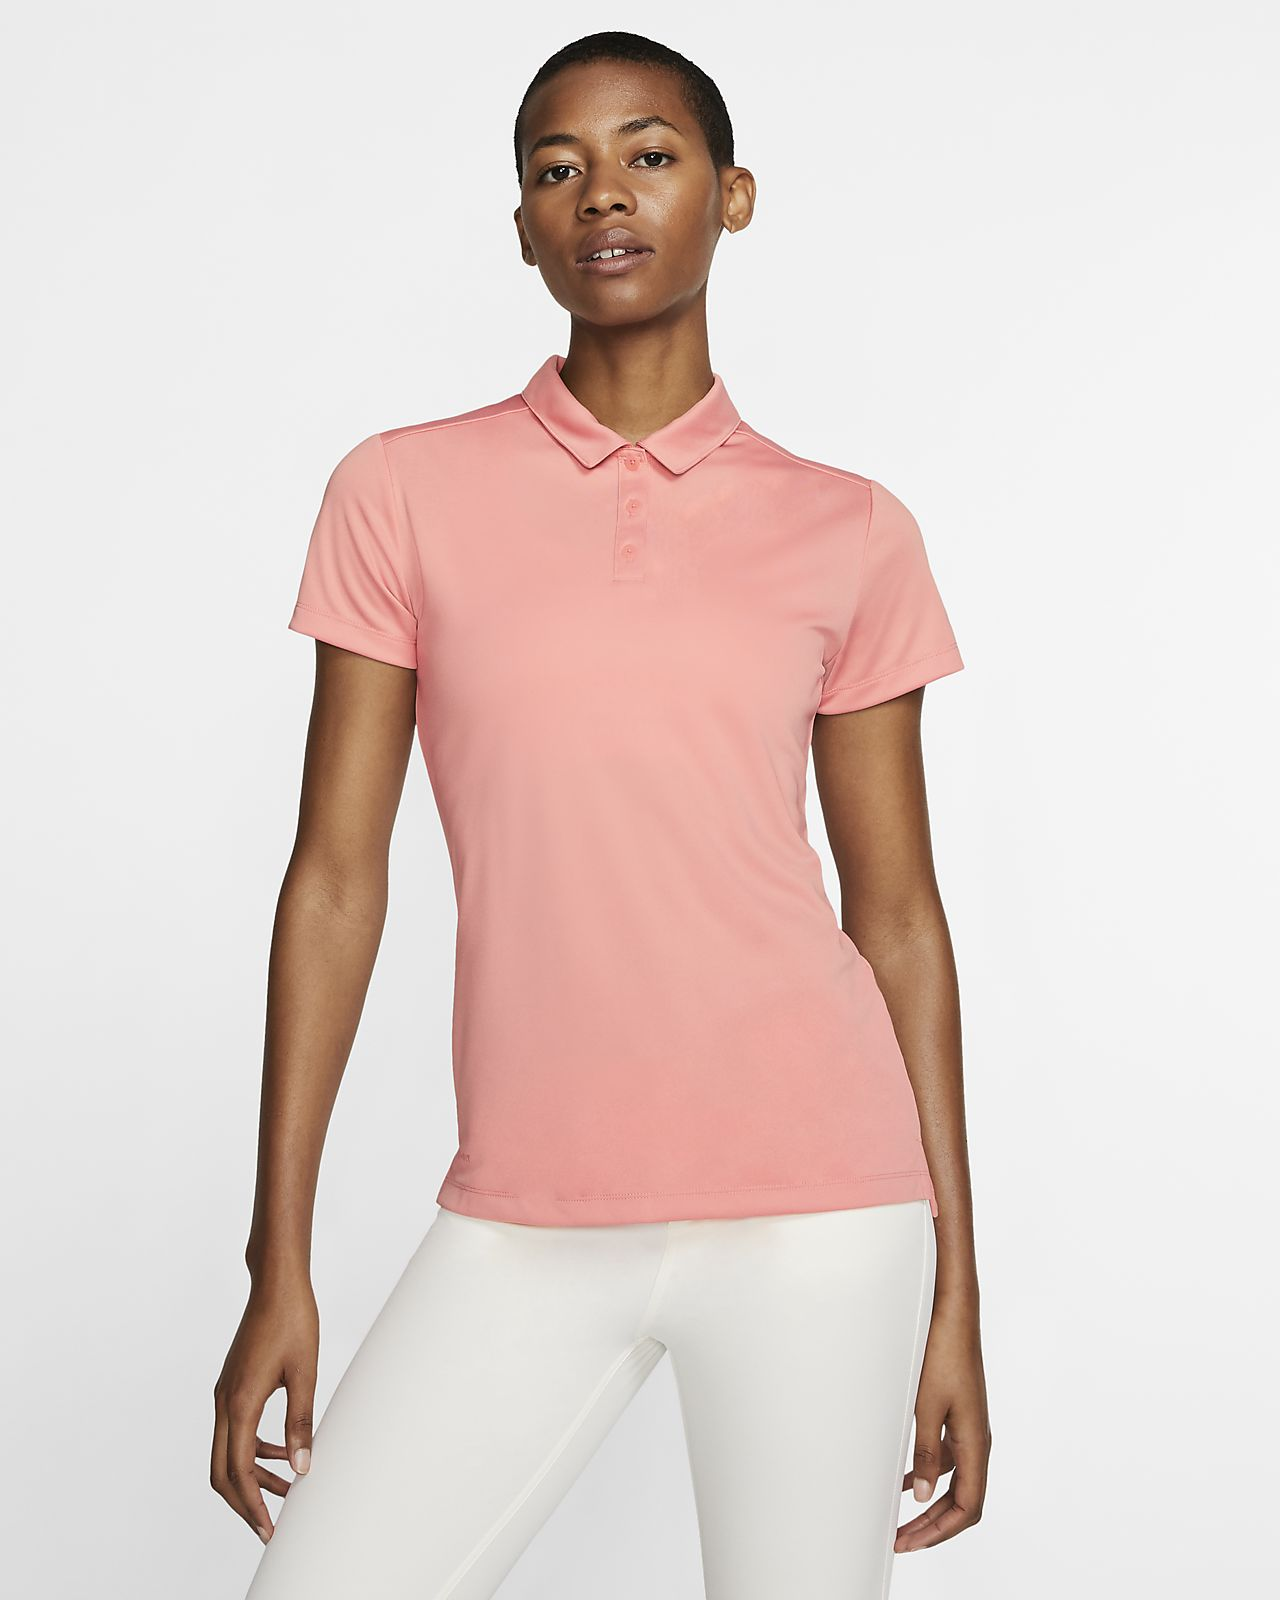 1c378d63f72c26 Nike Dri-FIT Women's Golf Polo. Nike.com